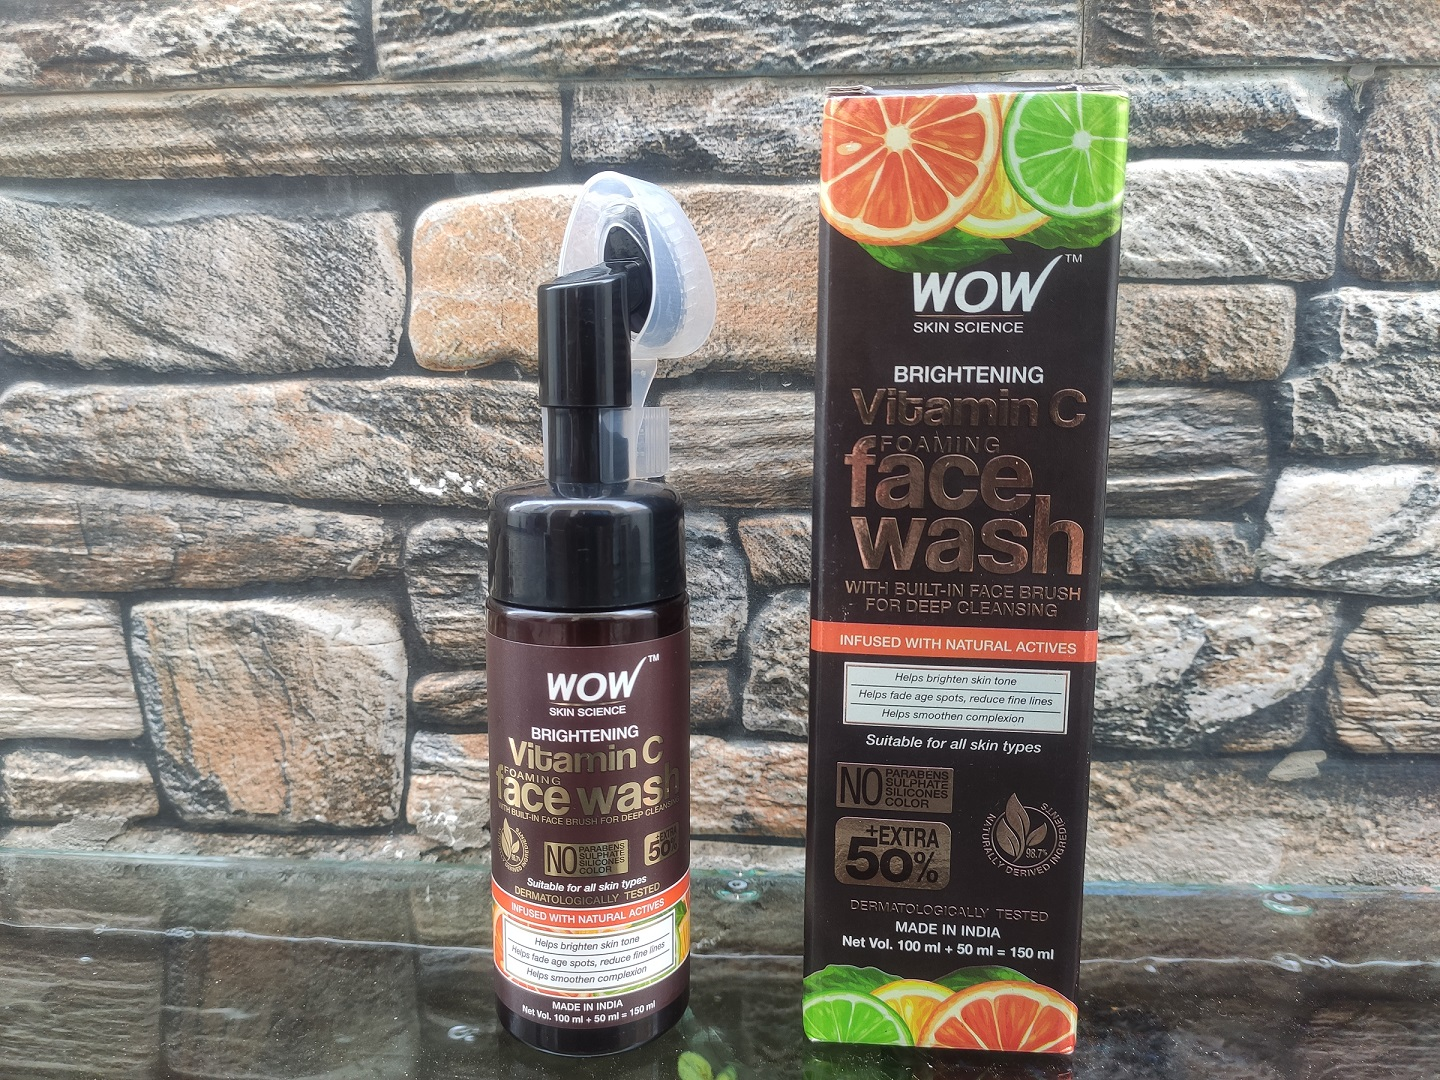 WOW Skin Science Brightening Vitamin C Foaming Face Wash